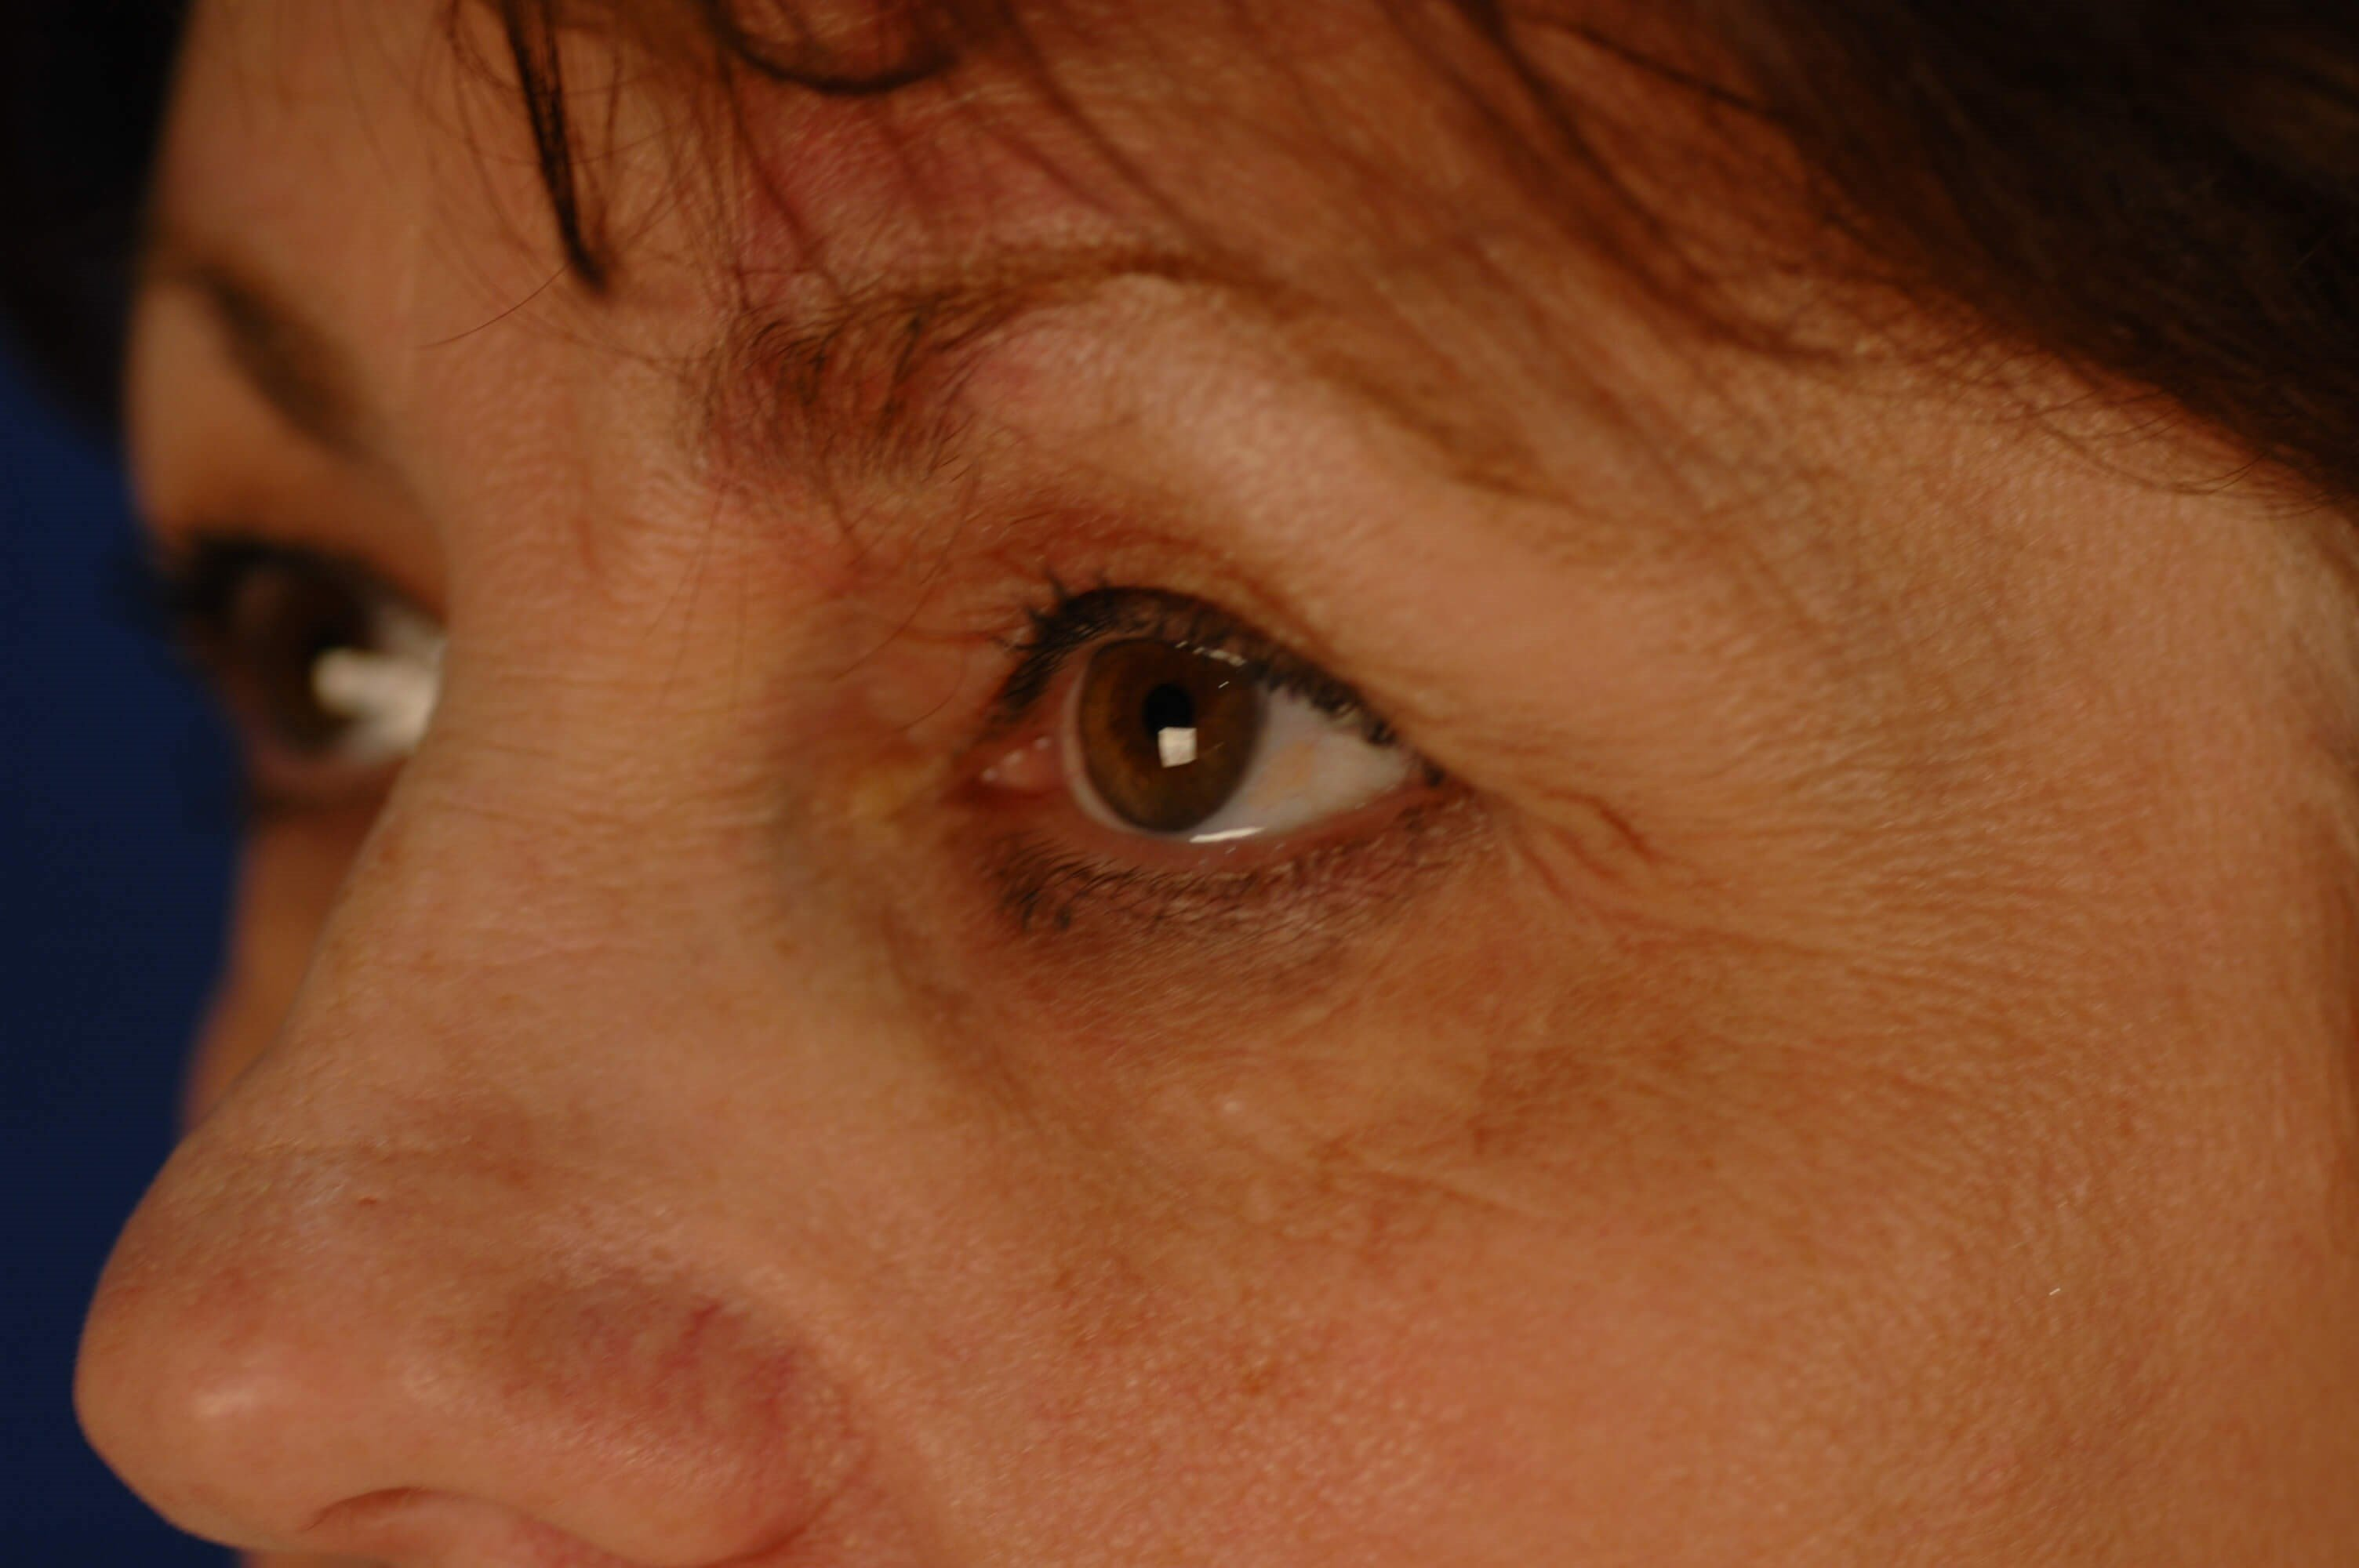 Newport Beach Blepharoplasty Oblique View Before